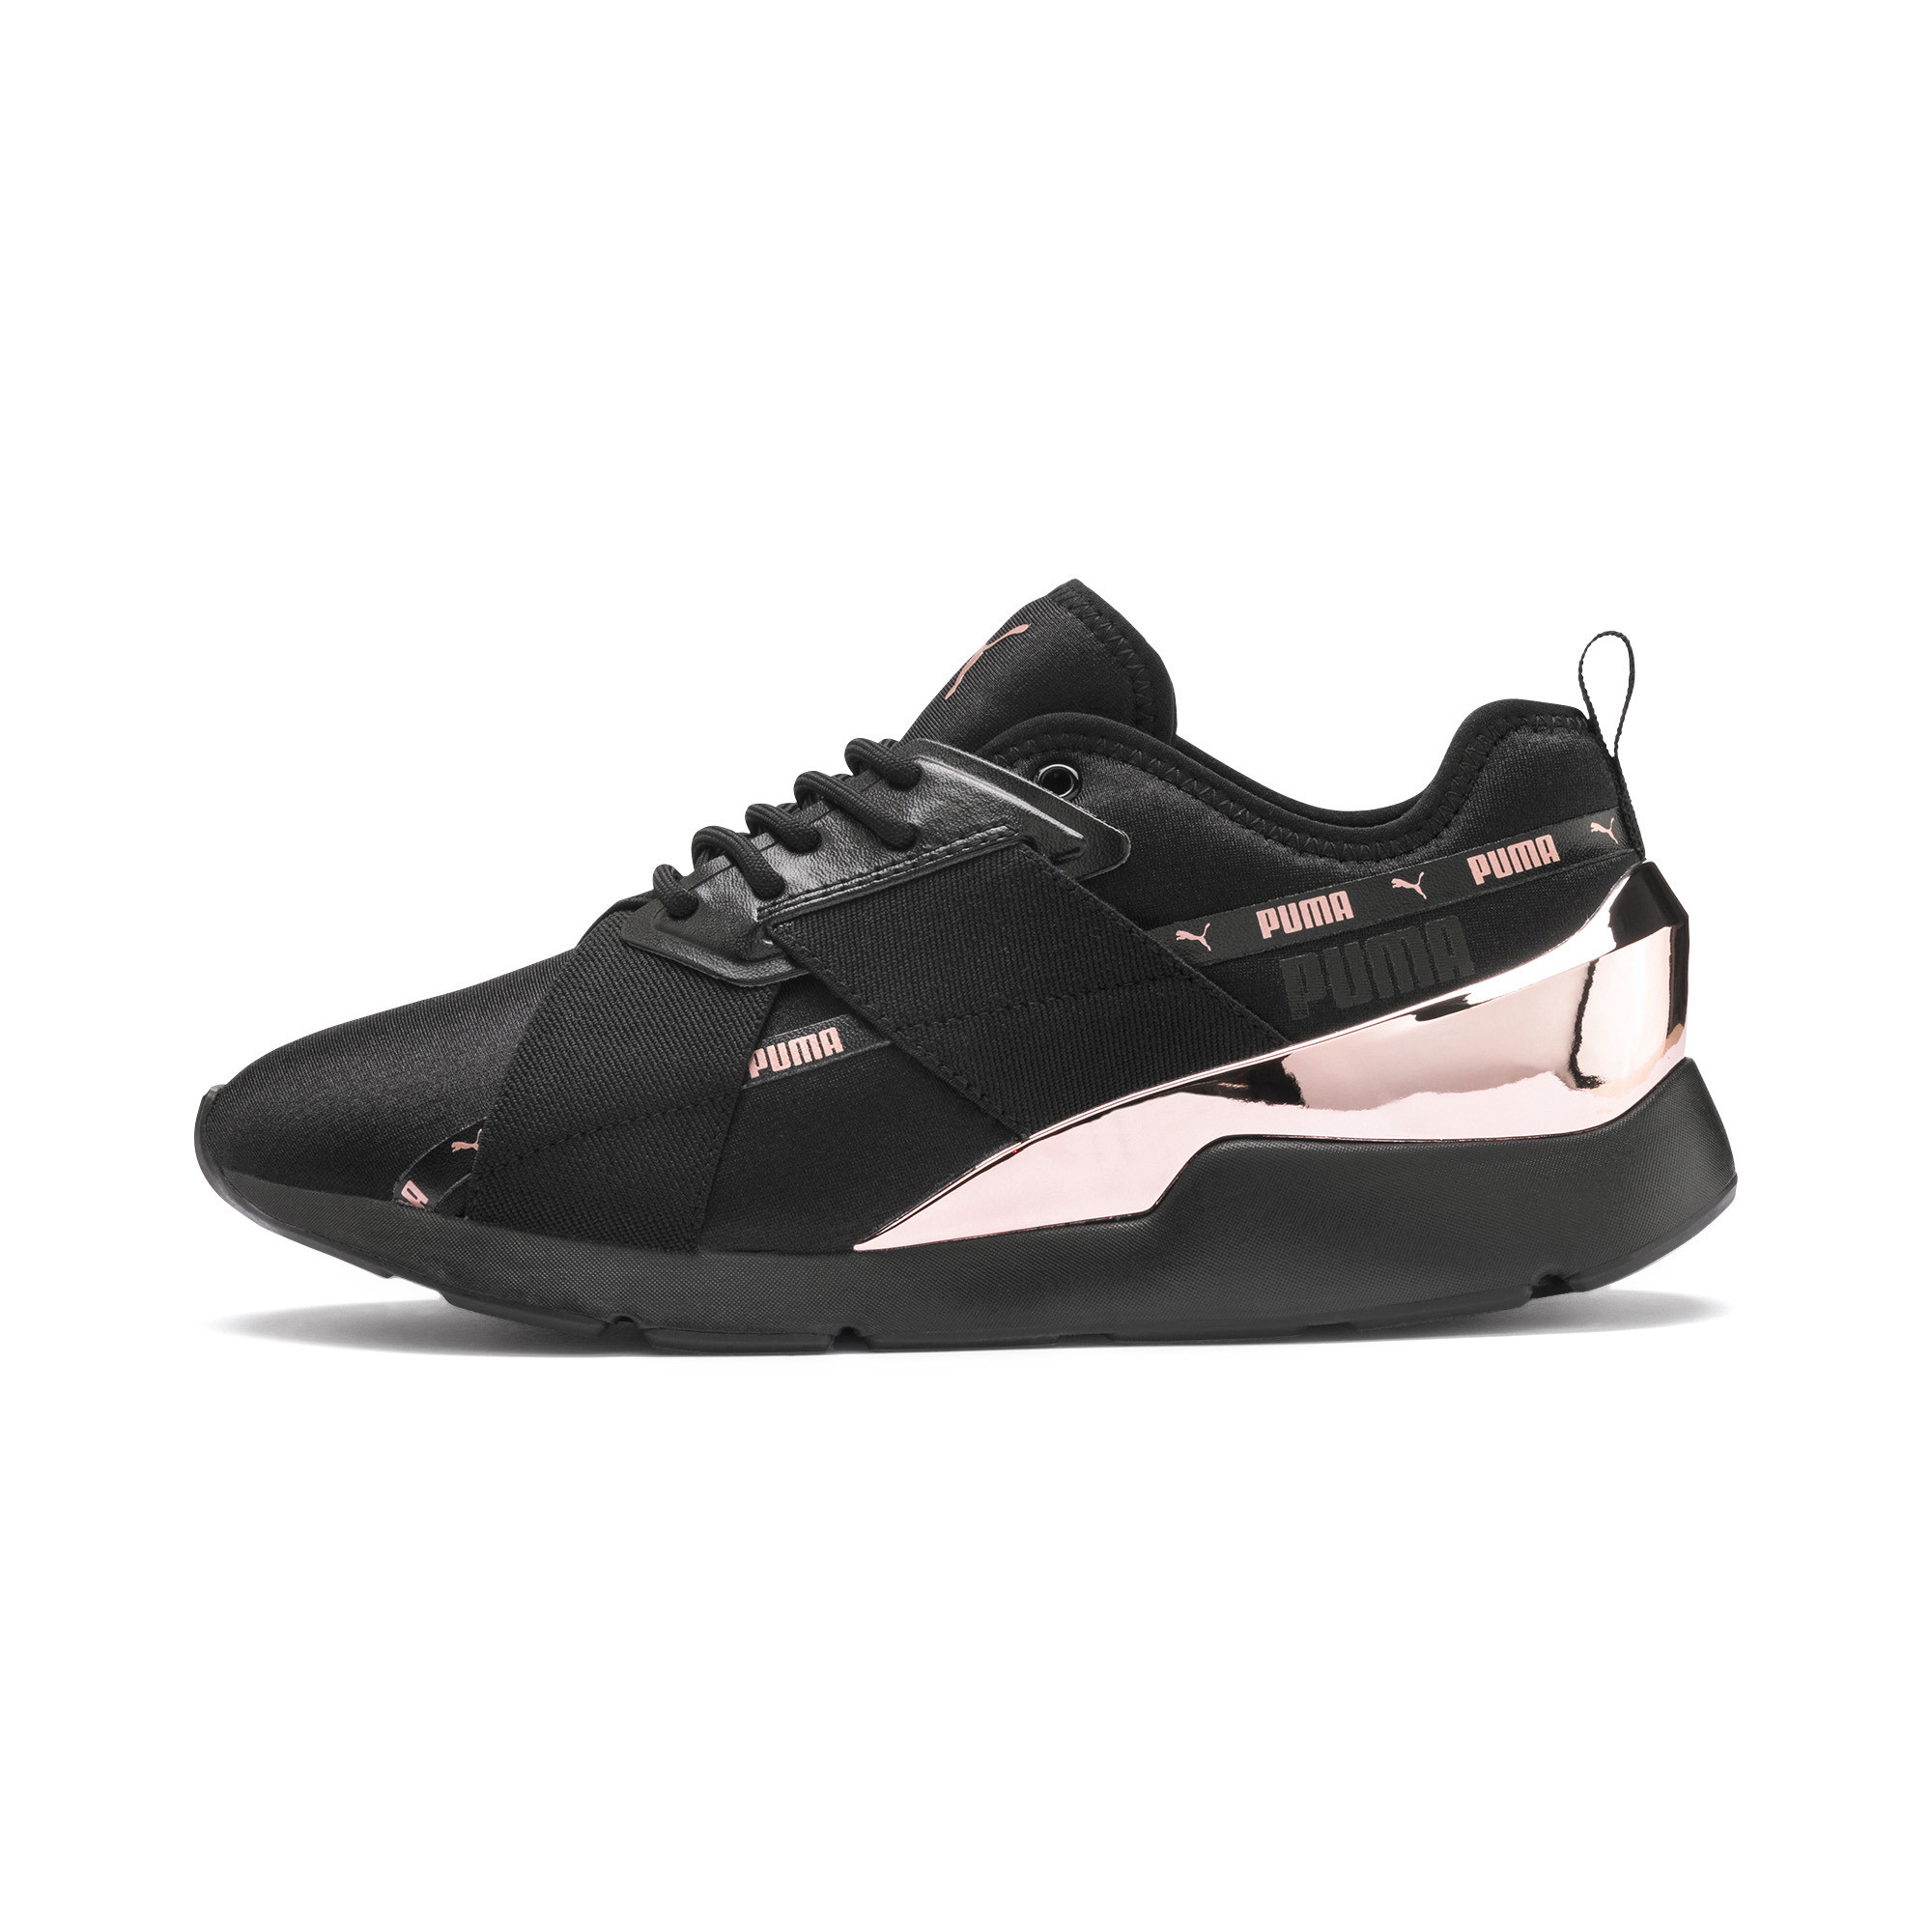 PUMA-Muse-X-2-Metallic-Women-039-s-Sneakers-Women-Shoe-Evolution thumbnail 18